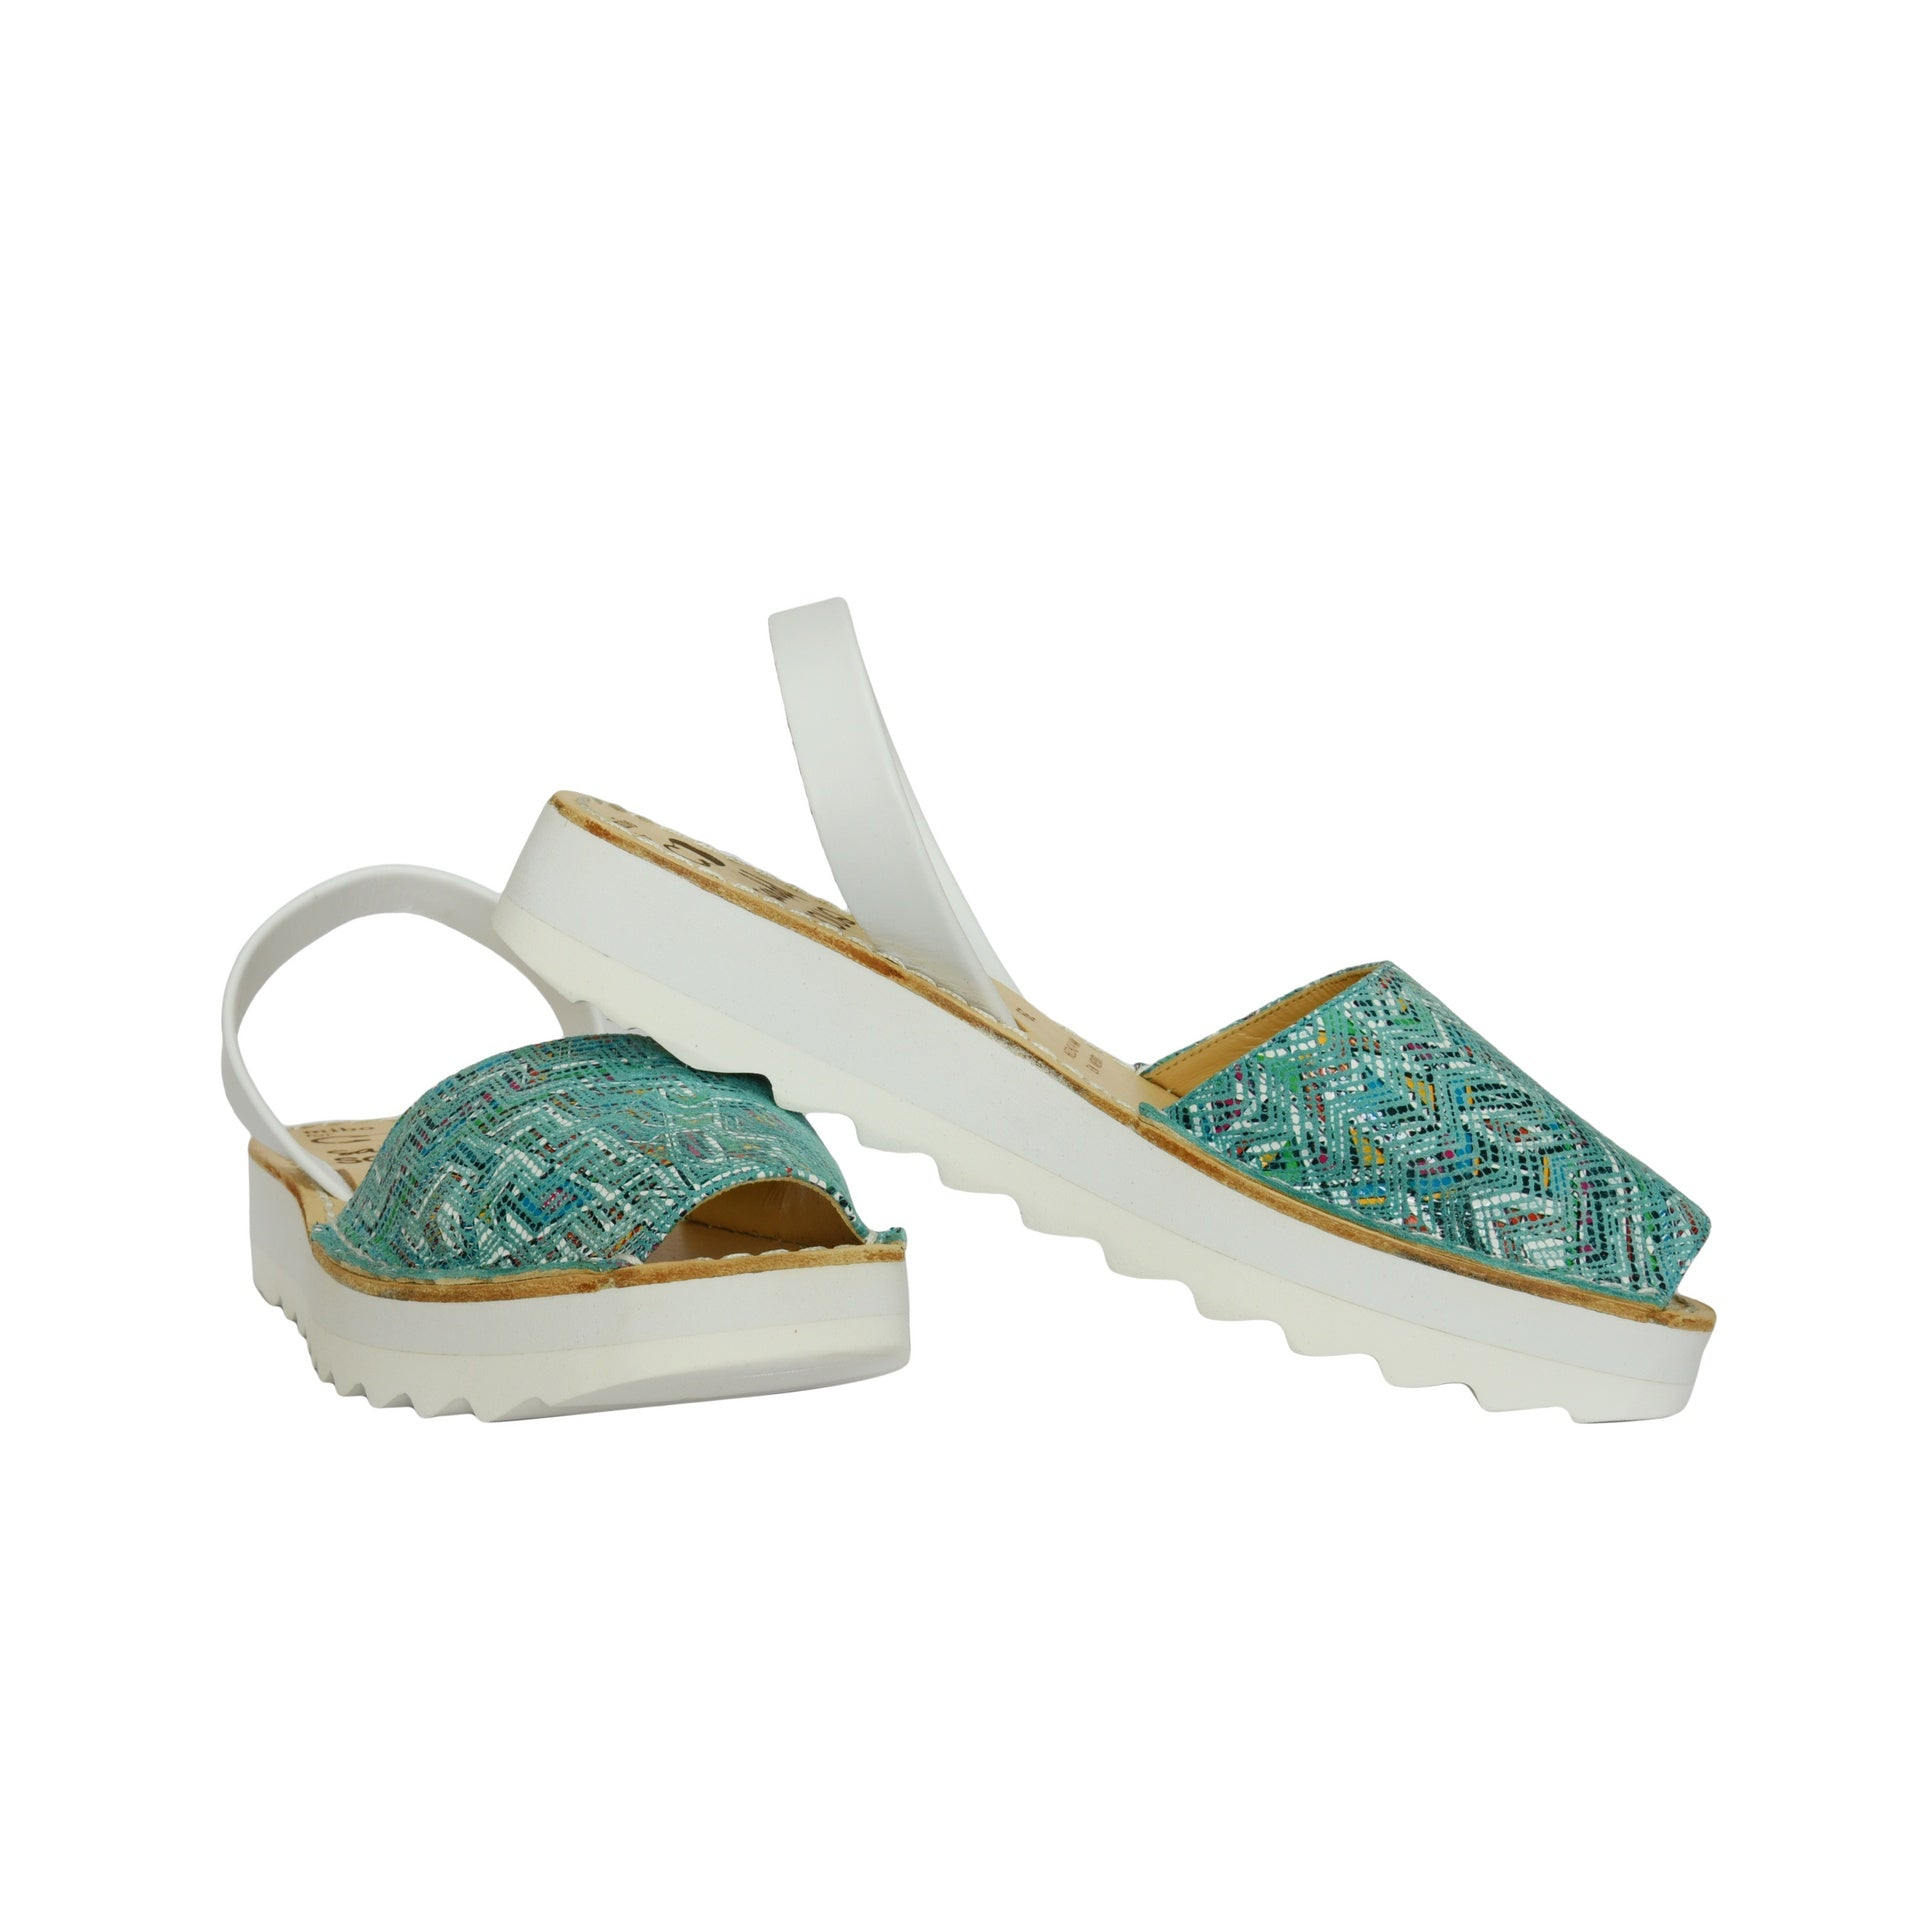 Turquoise Mibo Avarca Flatform Sandals for Women